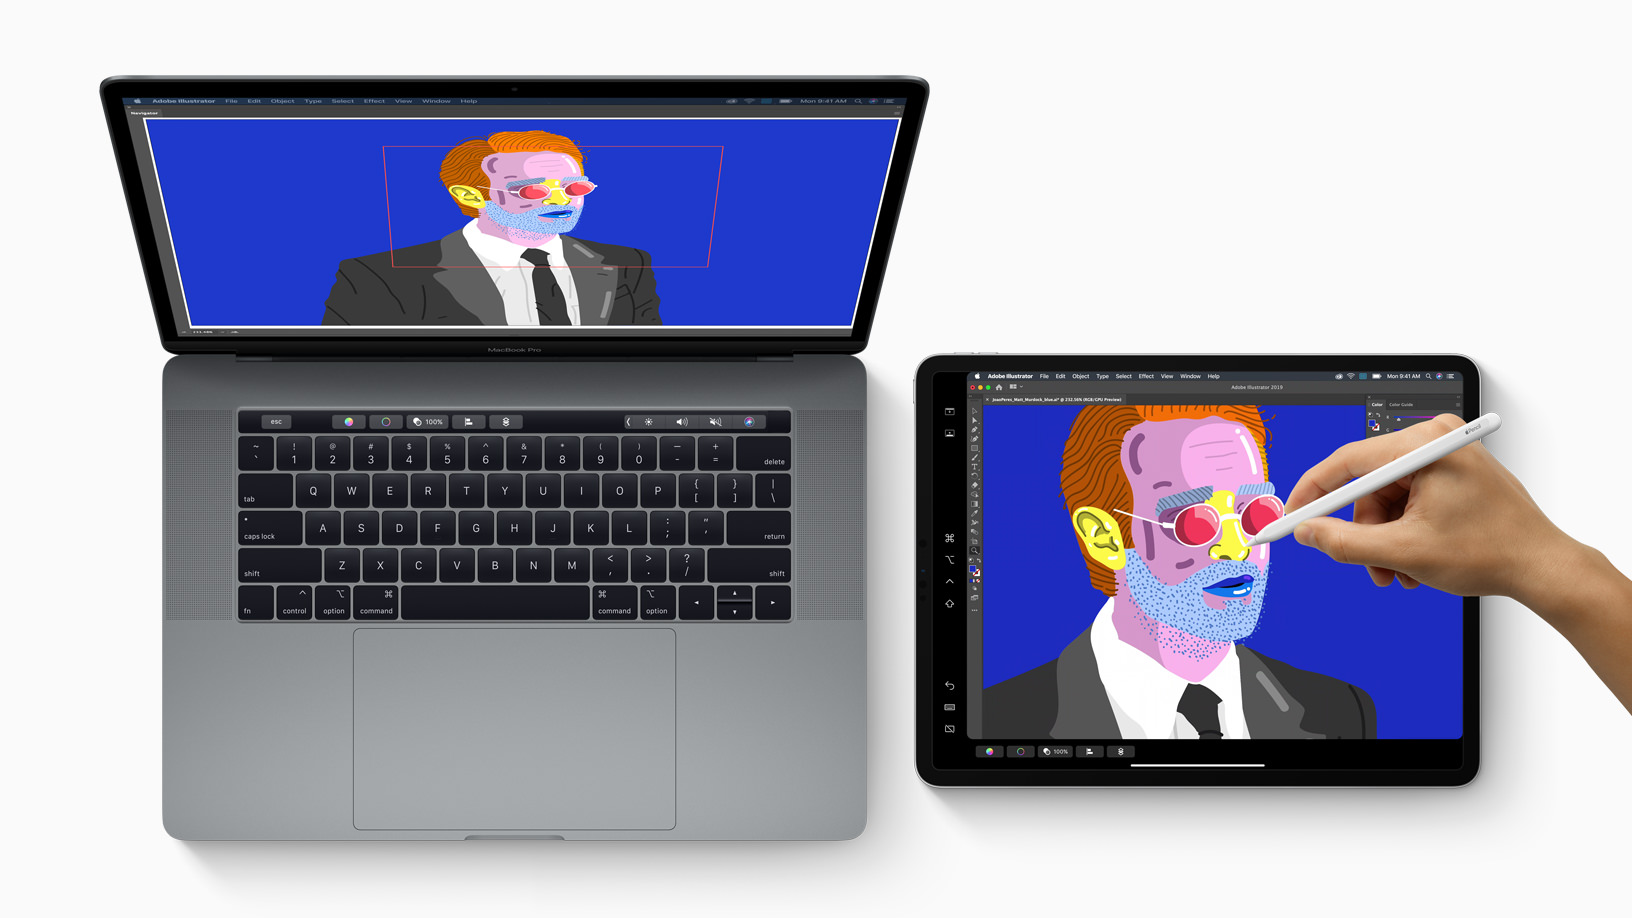 Apple-previews-macOS-Catalina-sidecar-with-iPad-Pro-06032019.jpg